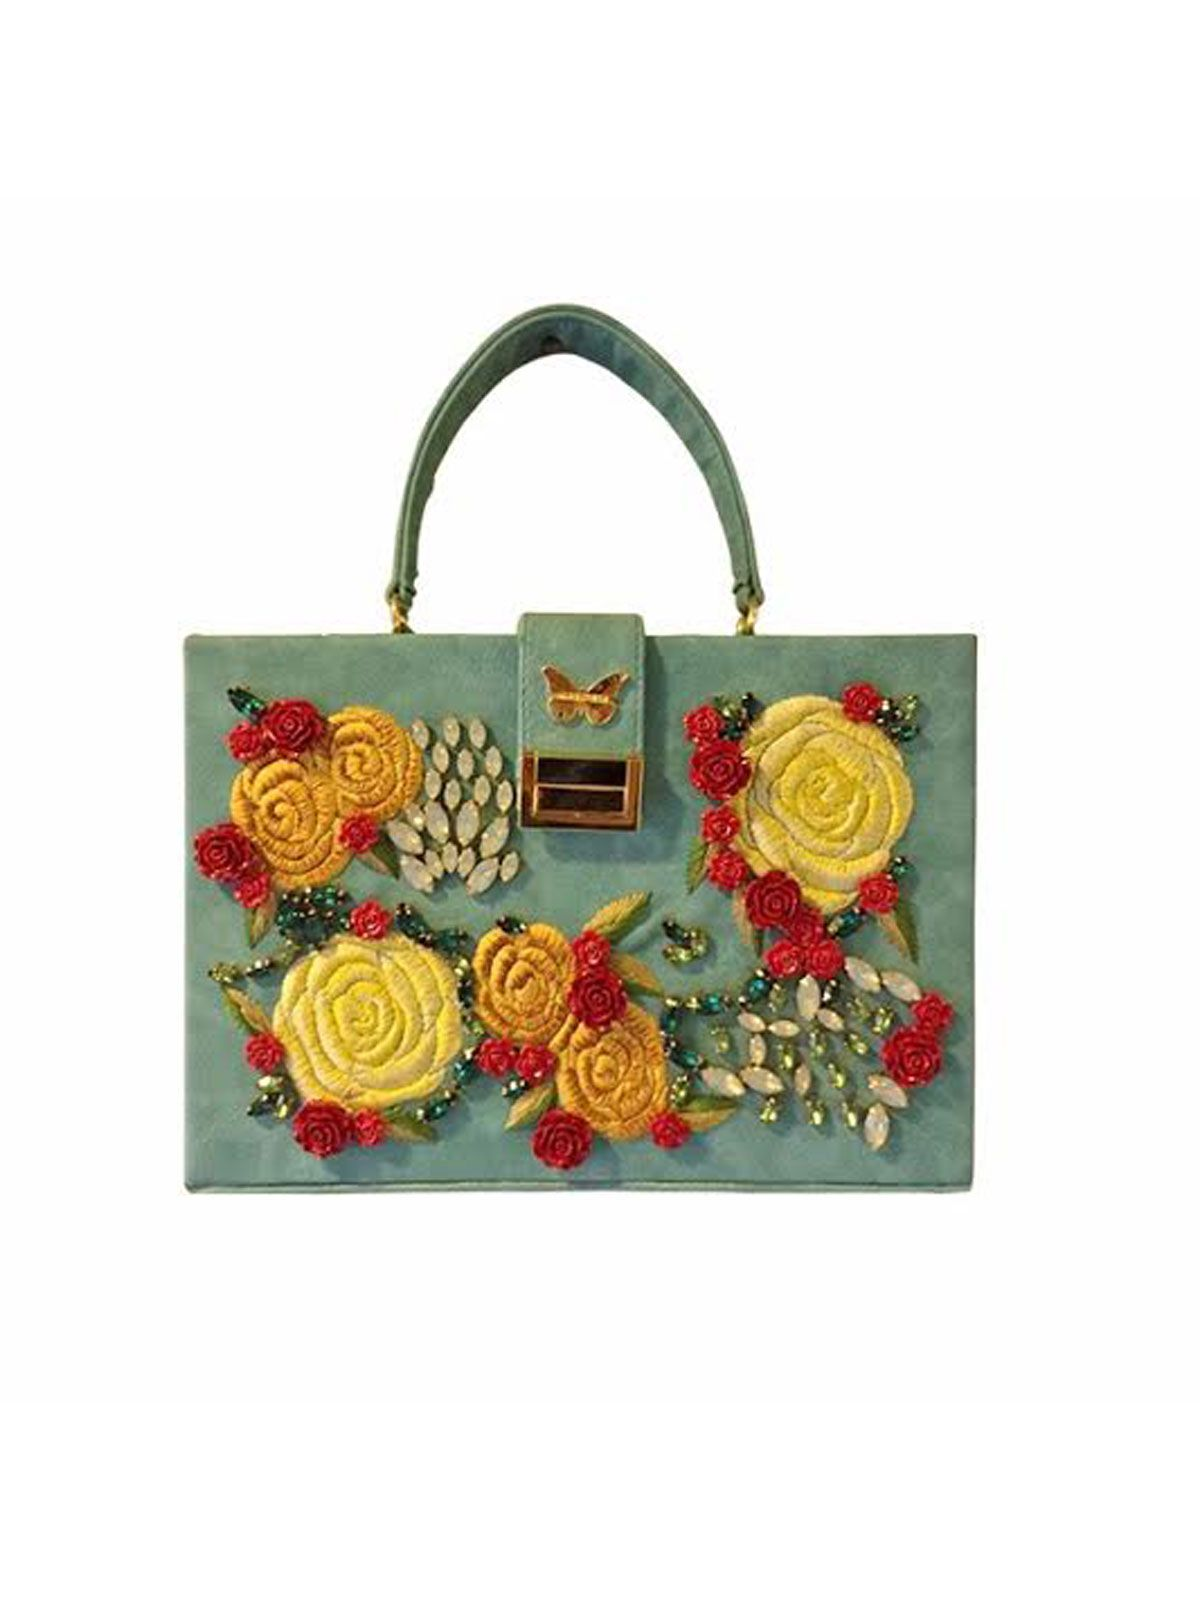 8241eb84217 This Handmade Sea Green Floral Clutch Is Made Of Faux Leather And  Embellished With Stone & Embroidery Work.